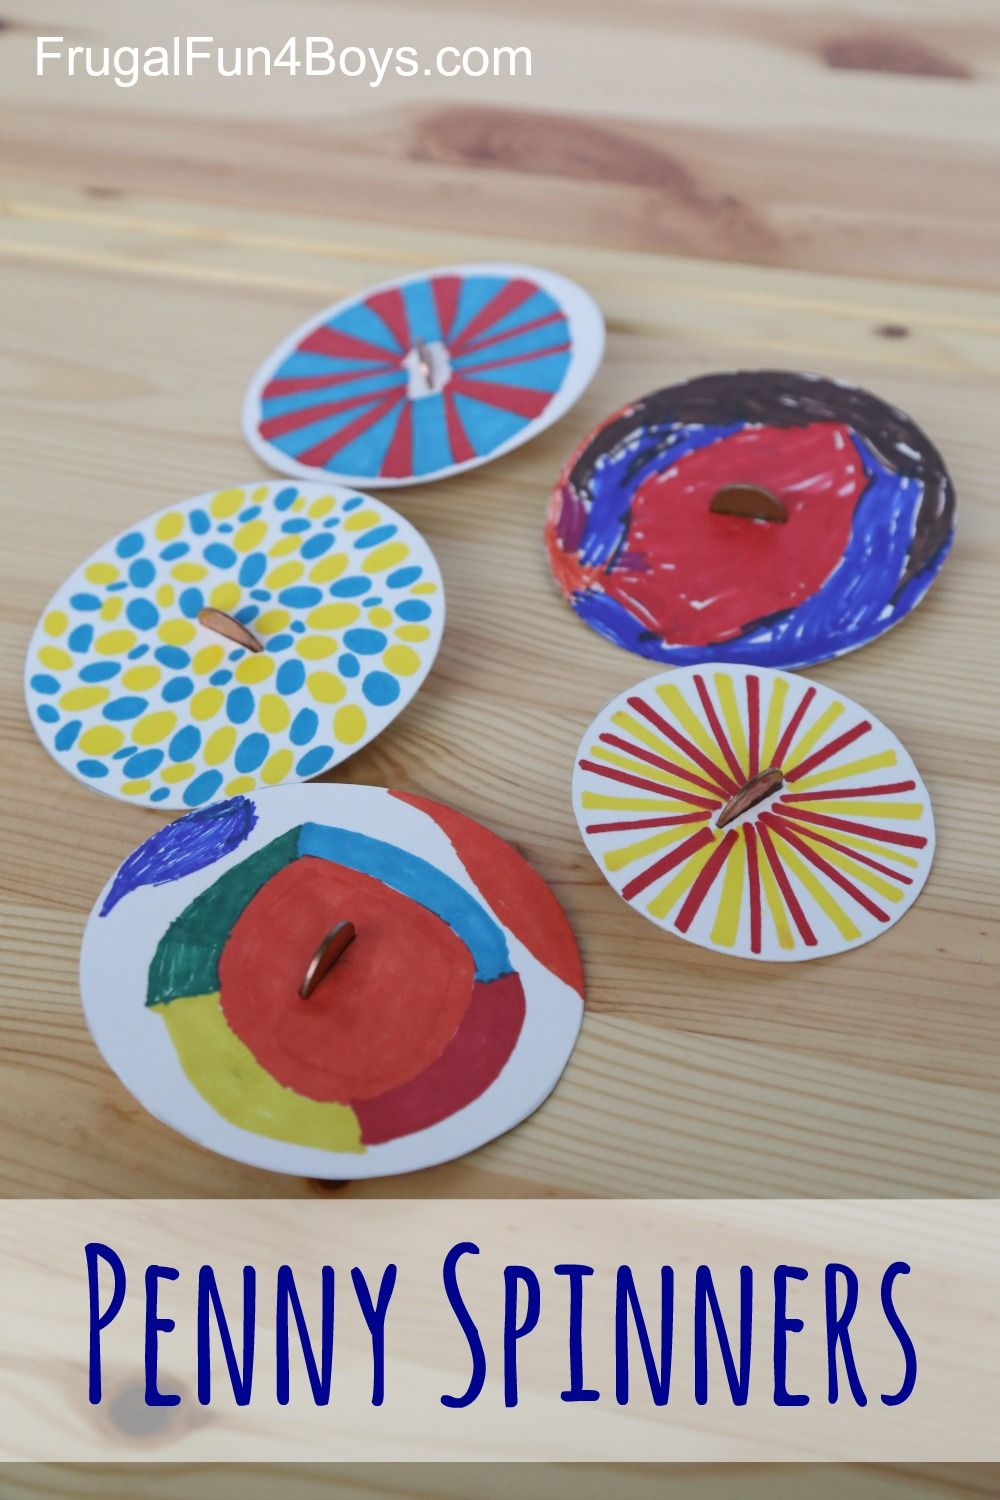 penny spinners tops that kids can make such a great craft that